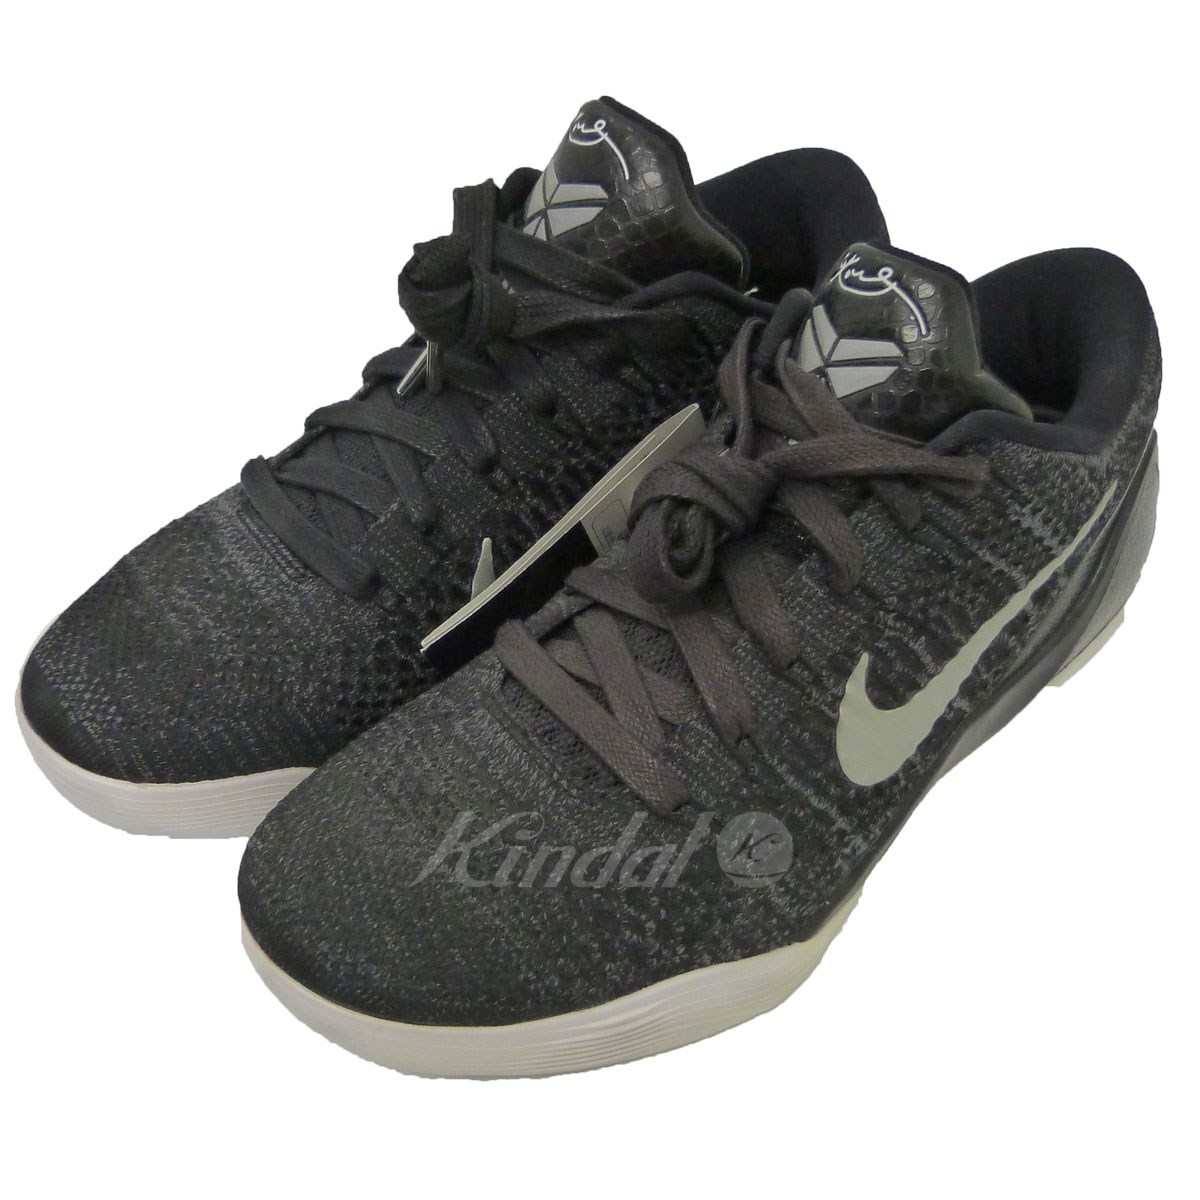 【中古】NIKE(HTM) 「KOBE 9 ELITE LOW PRM」スニーカー 【送料無料】 【004323】 【KIND1327】